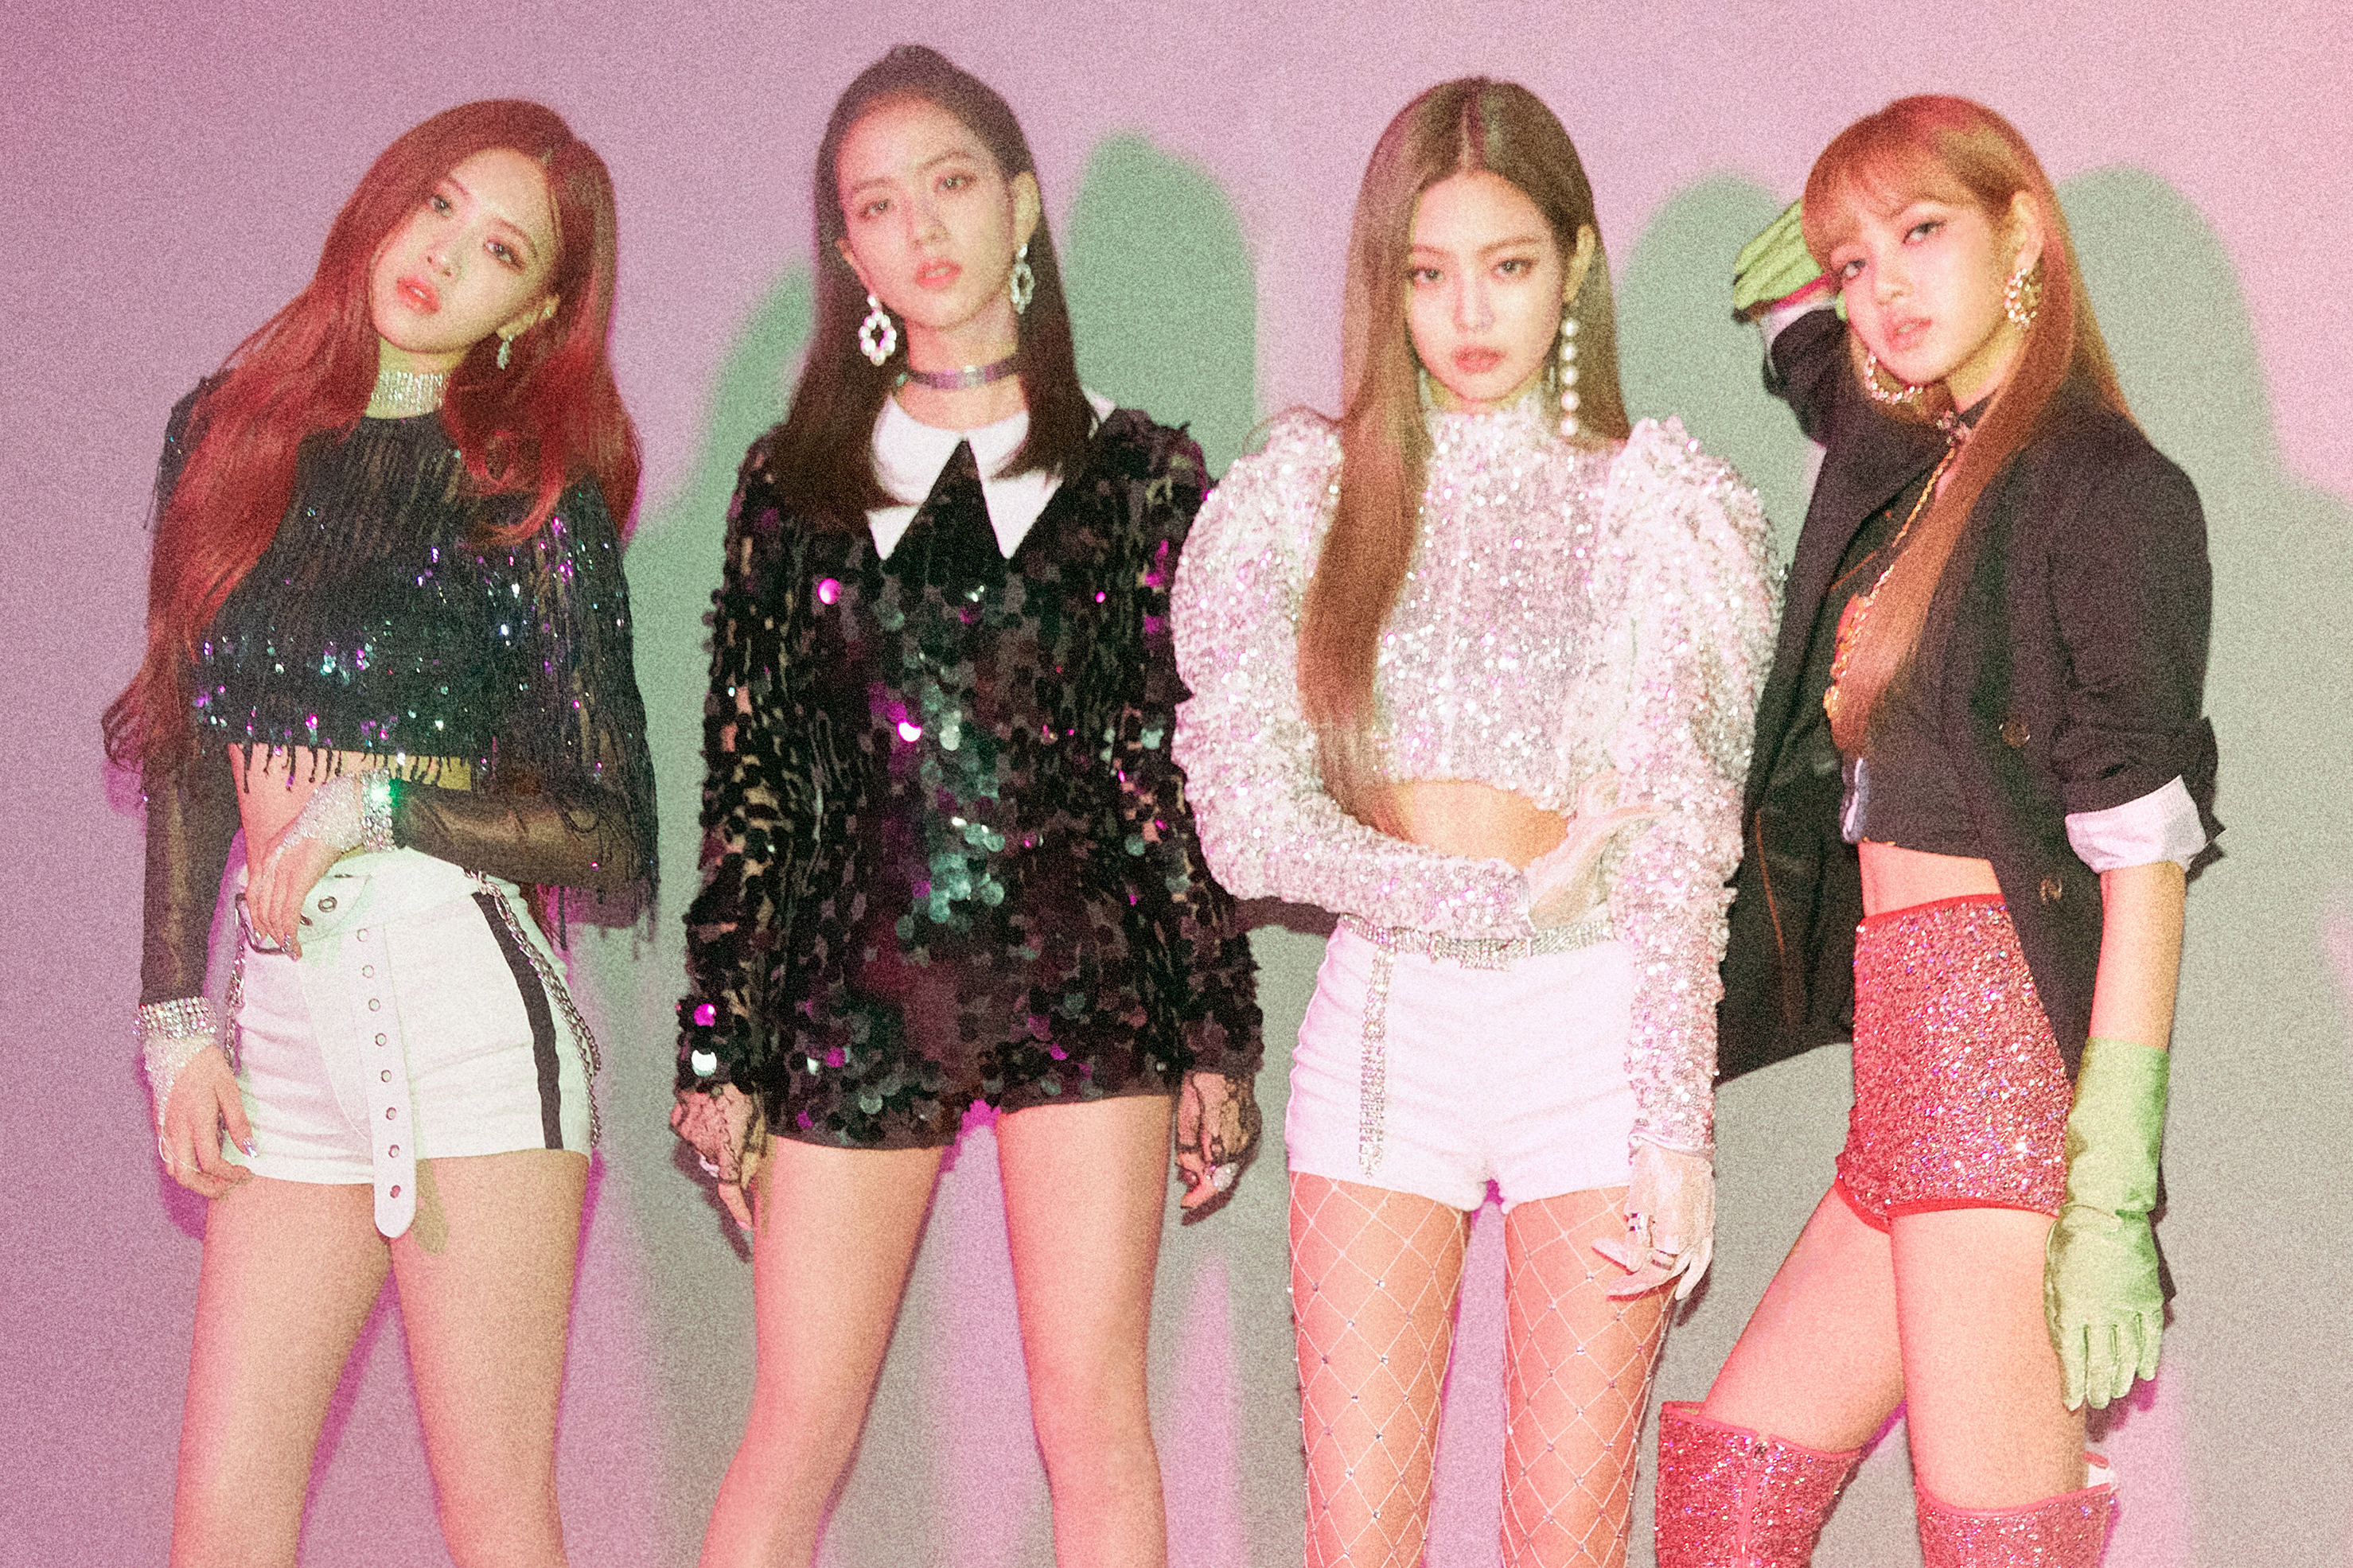 Blackpink 5 Things To Know About K Pop Group Playing Coachella